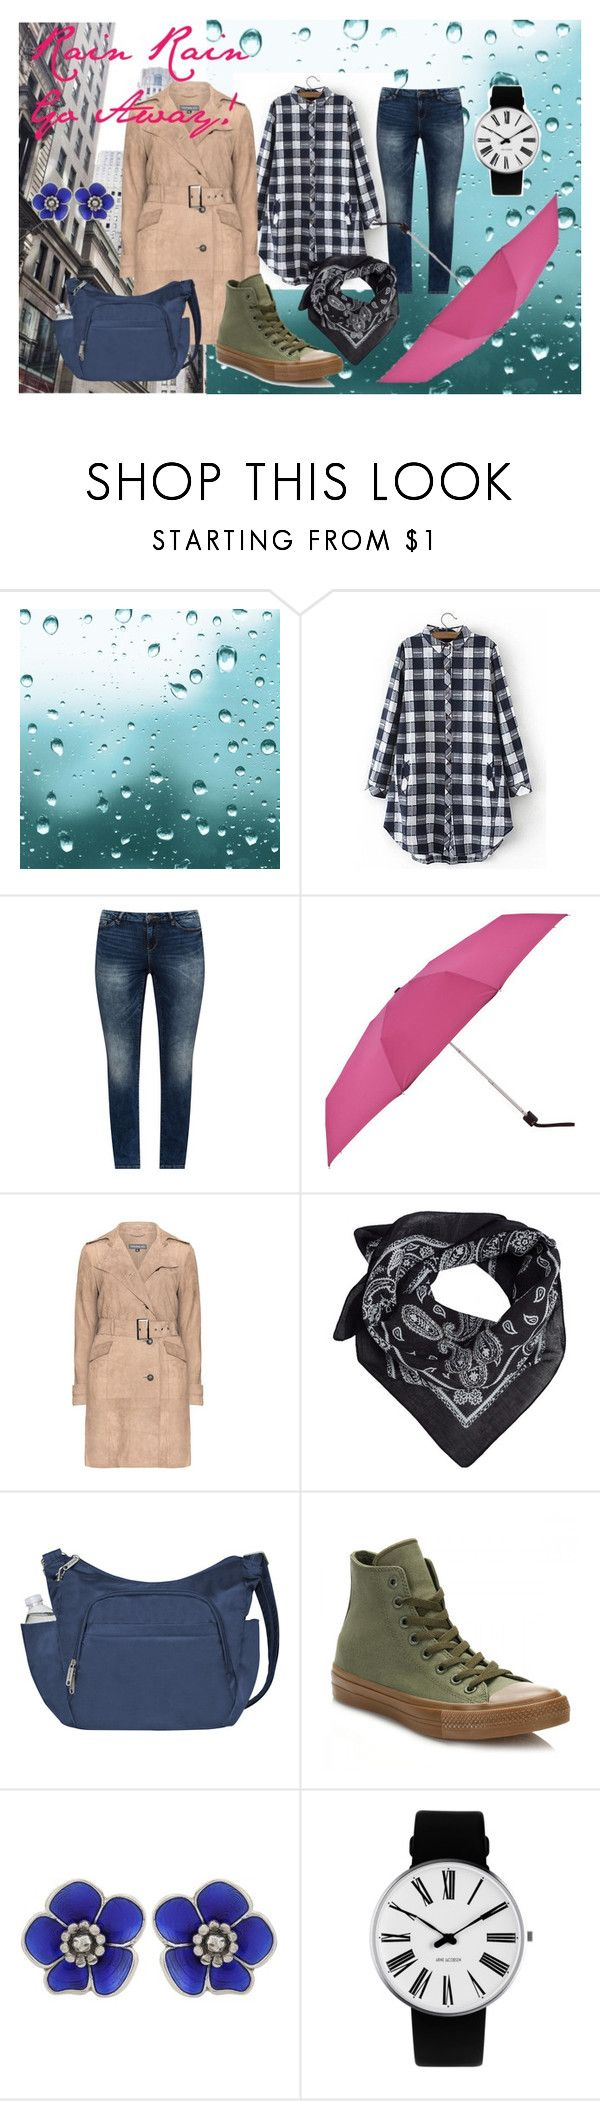 """Rainy outfit for today :)"" by izostworekblogspot on Polyvore featuring moda, JunaRose, MANGO, Travelon, Converse, Bottega Veneta i Rosendahl"